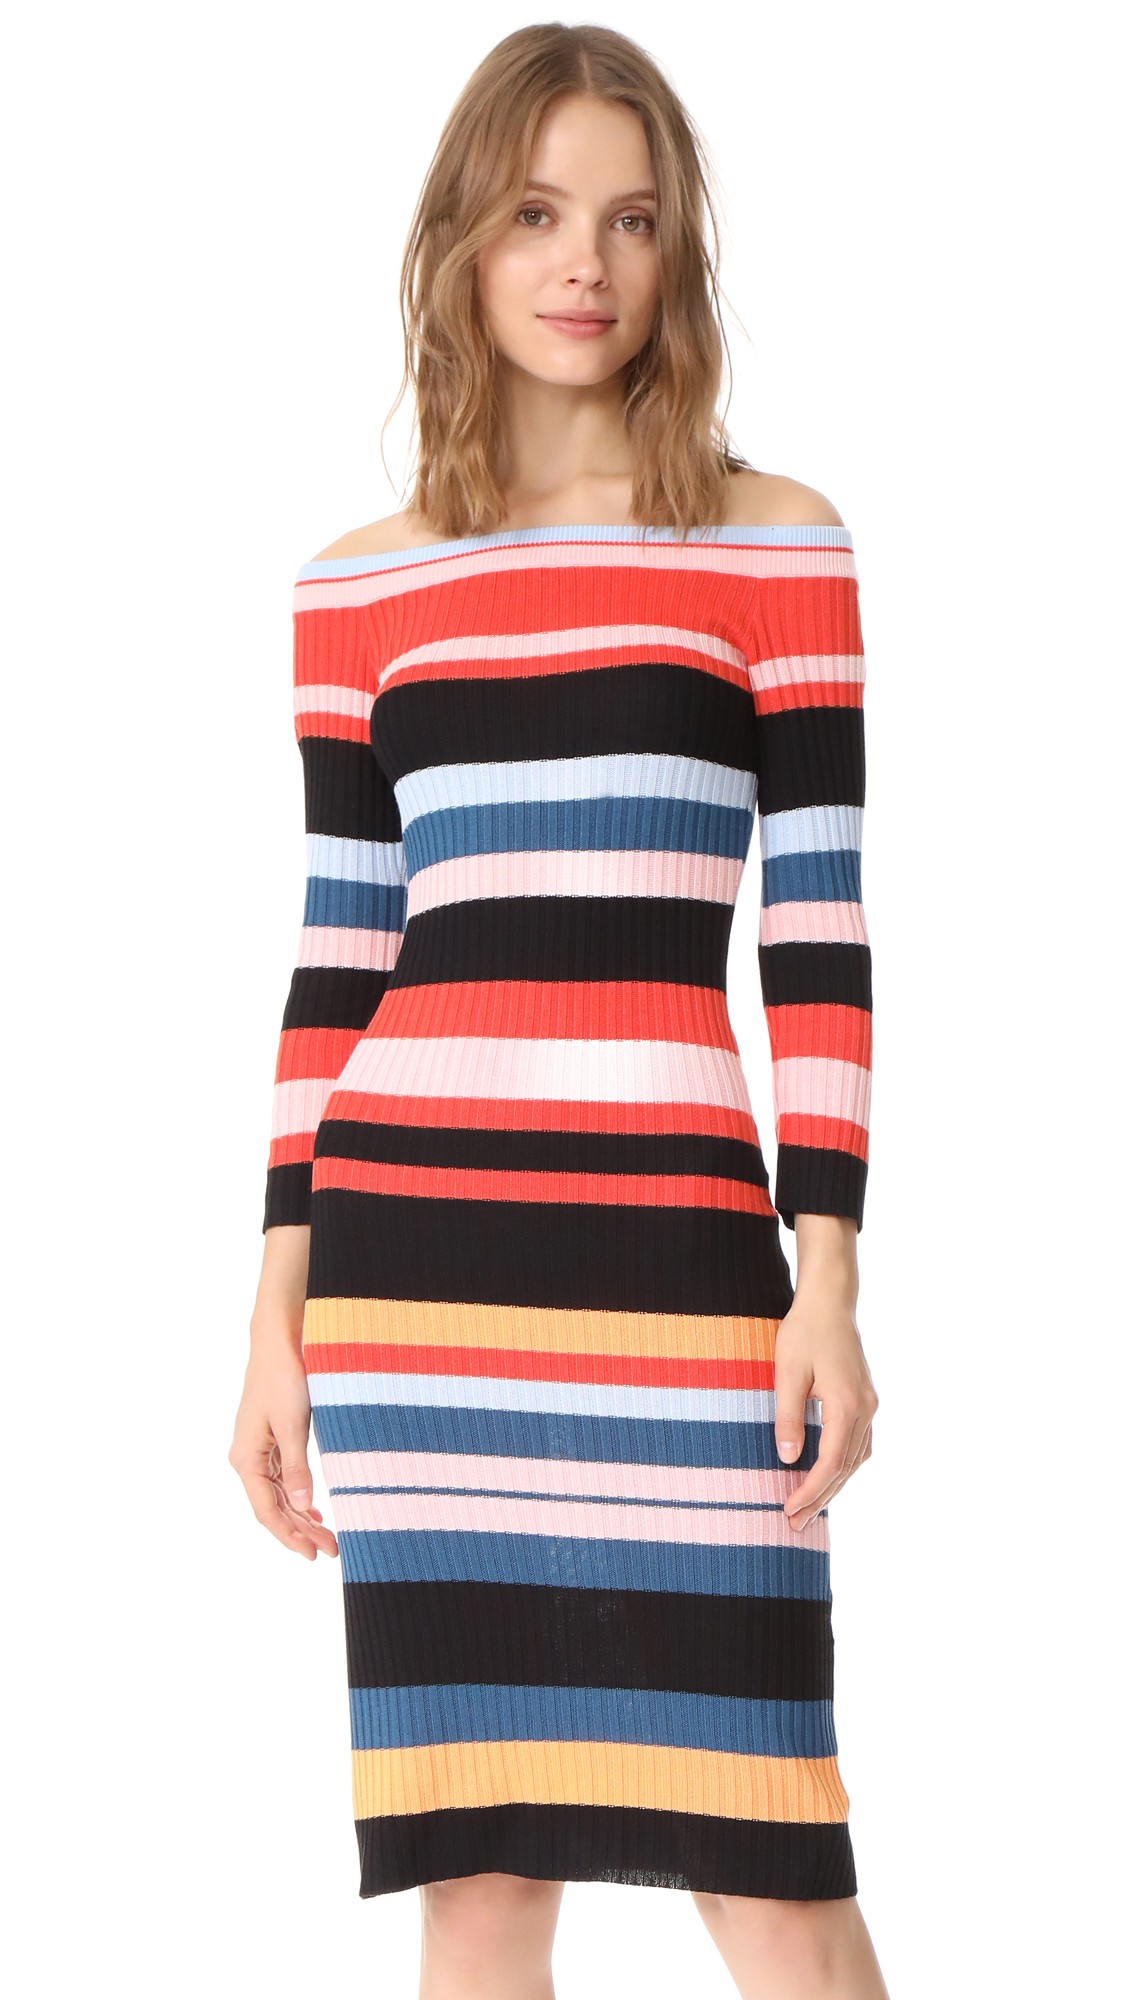 endless rose Striped Midi Dress - Multi